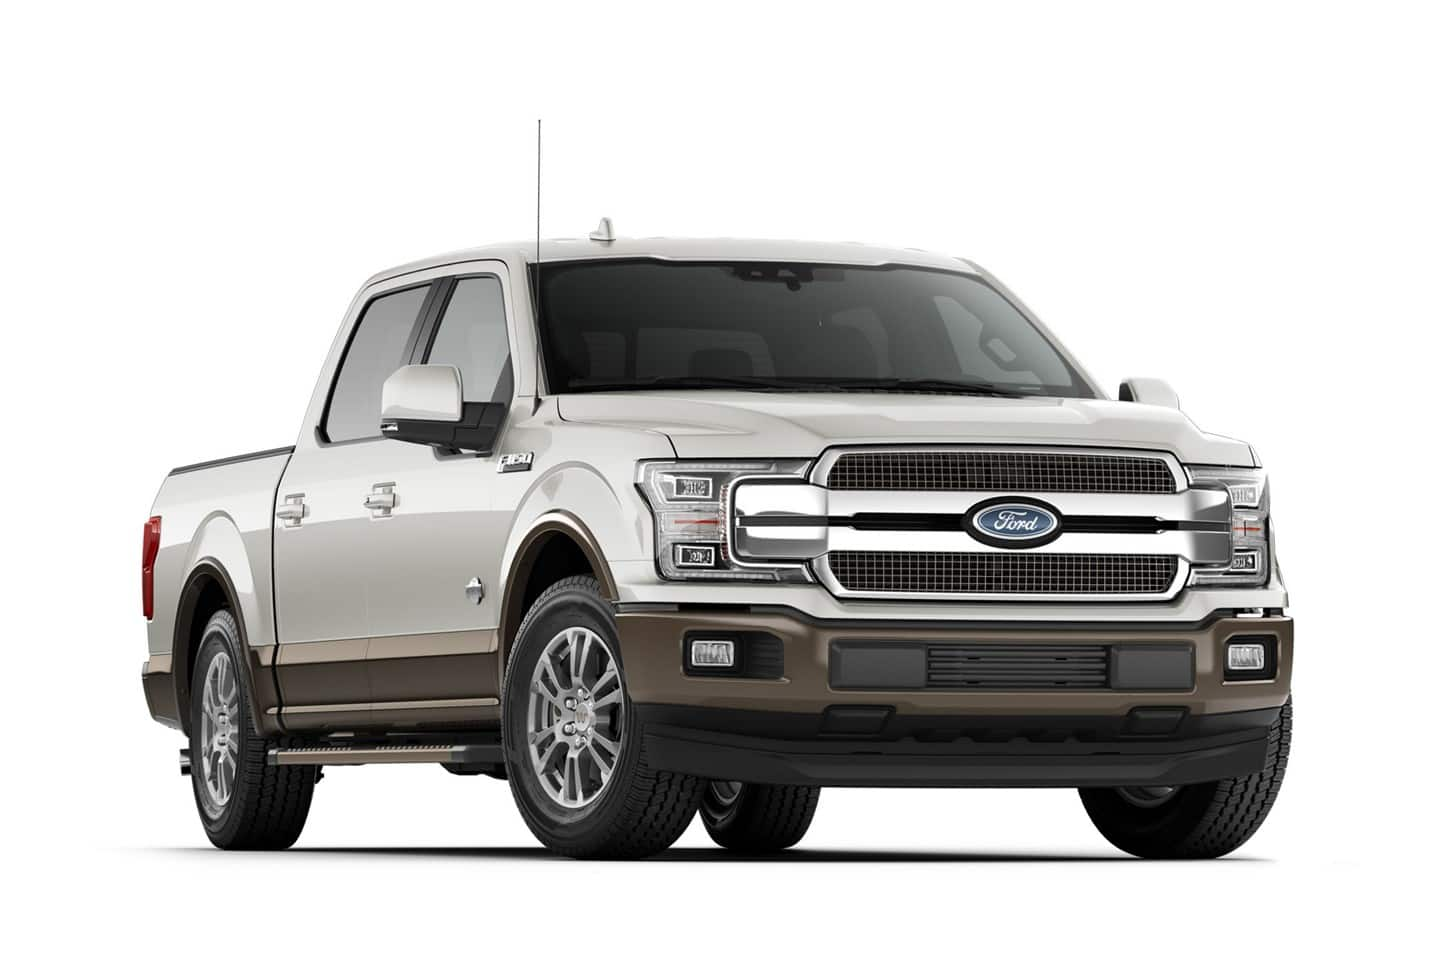 36 All New 2020 Ford F 150 Diesel Specs Wallpaper